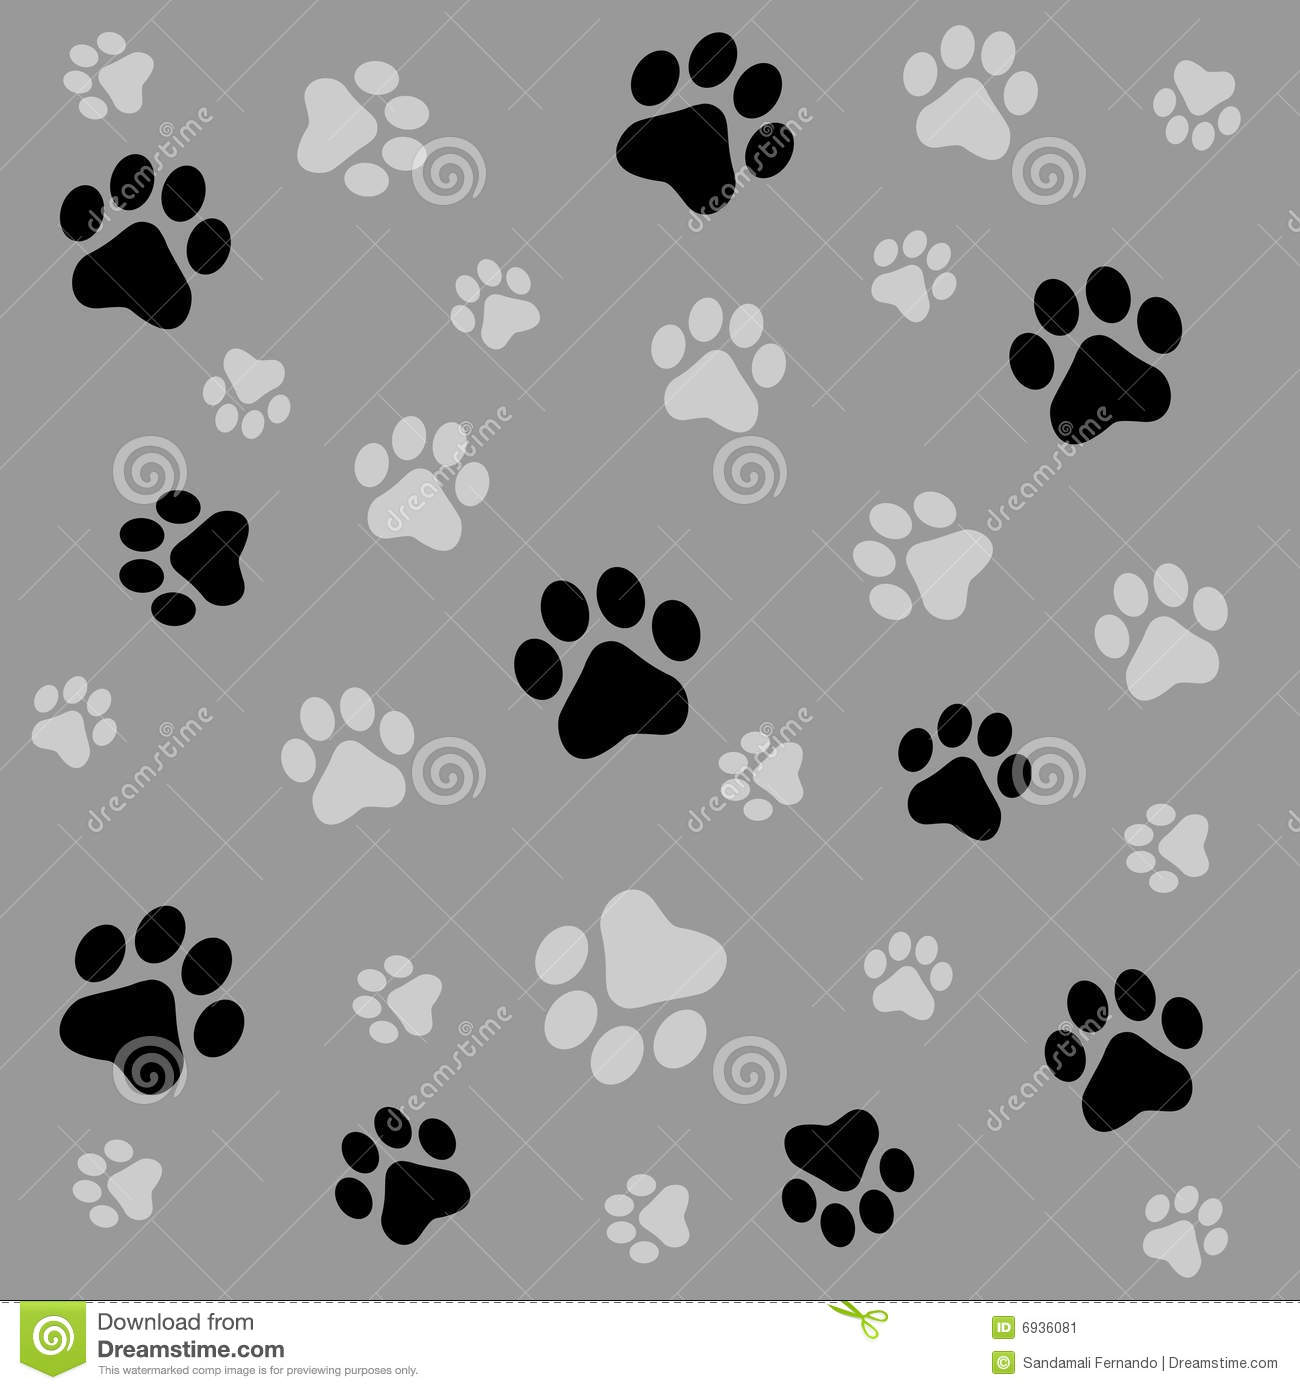 Cute Cartoon Animal Wallpaper Paw Prints Background Stock Vector Illustration Of Paint